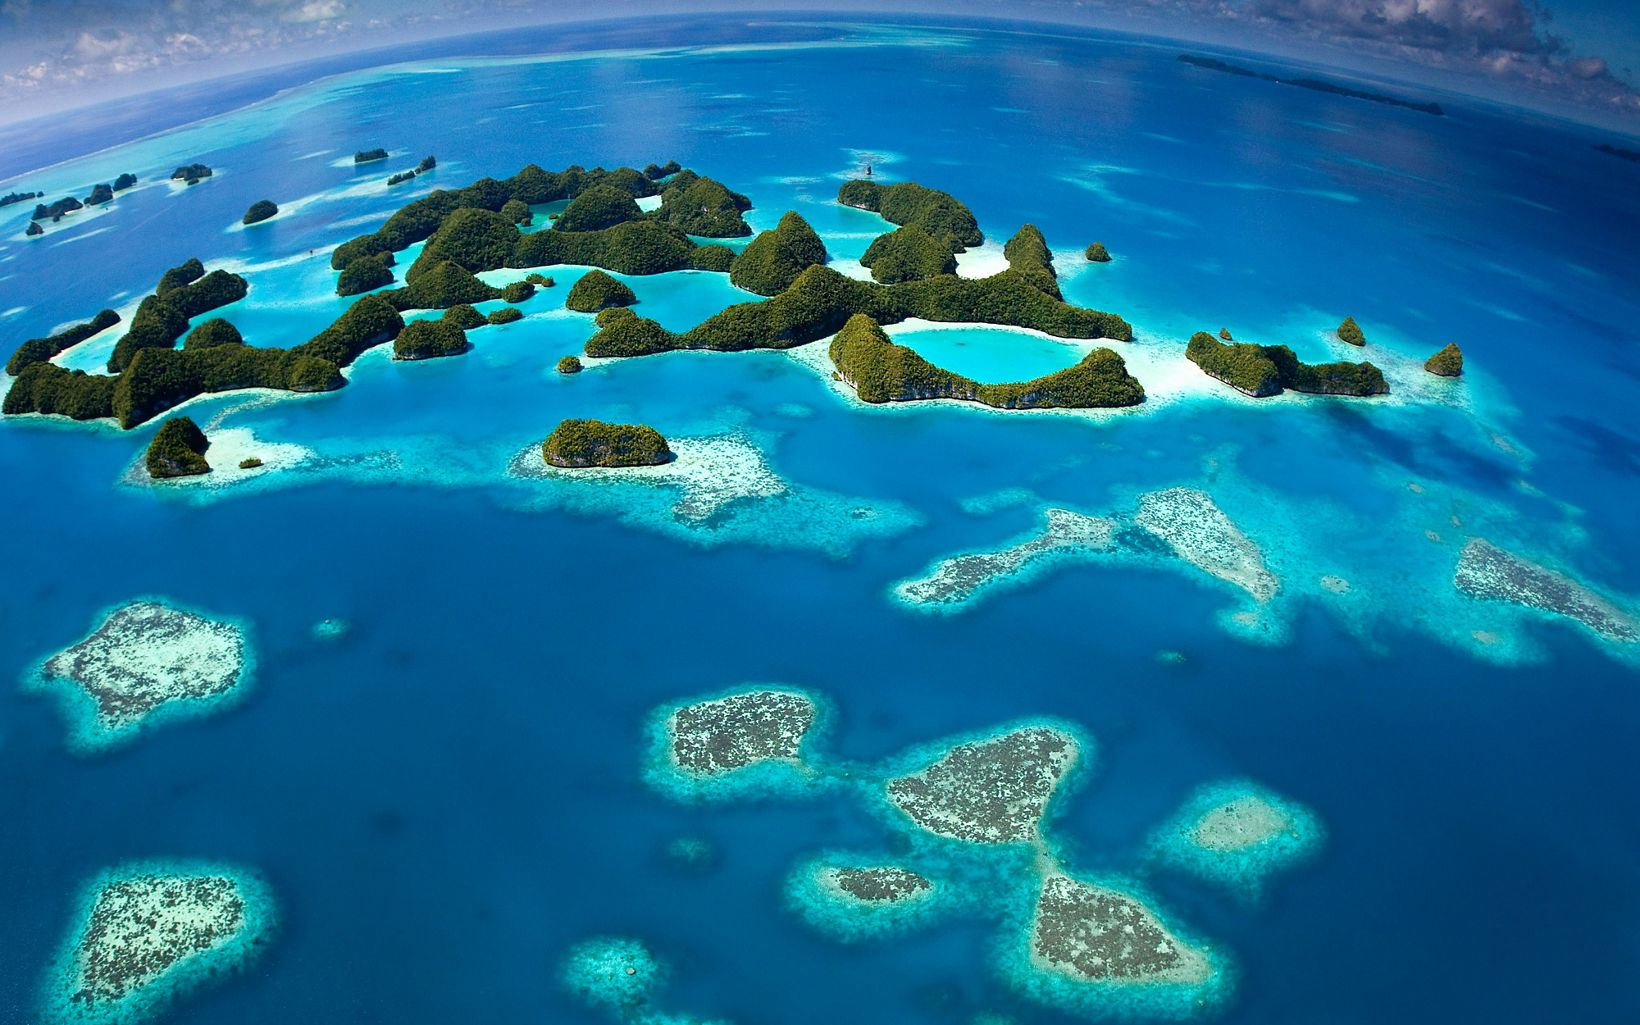 The coral reefs of Palau are part of a massive interconnected system that ties together Micronesia and the Western Pacific.